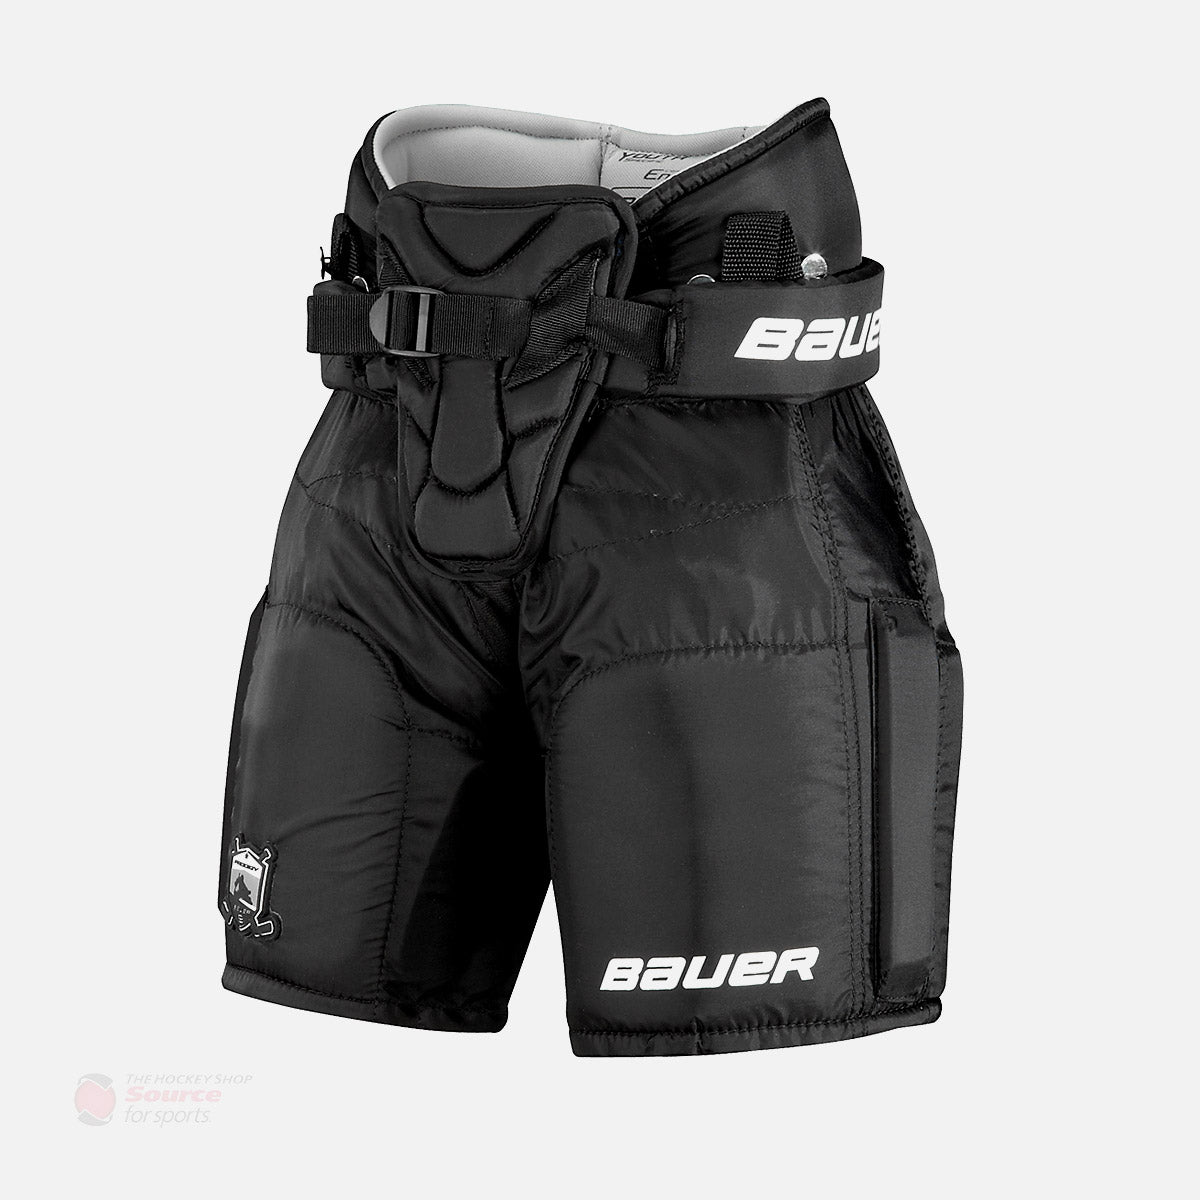 Bauer Prodigy 2.0 Youth Goalie Pants